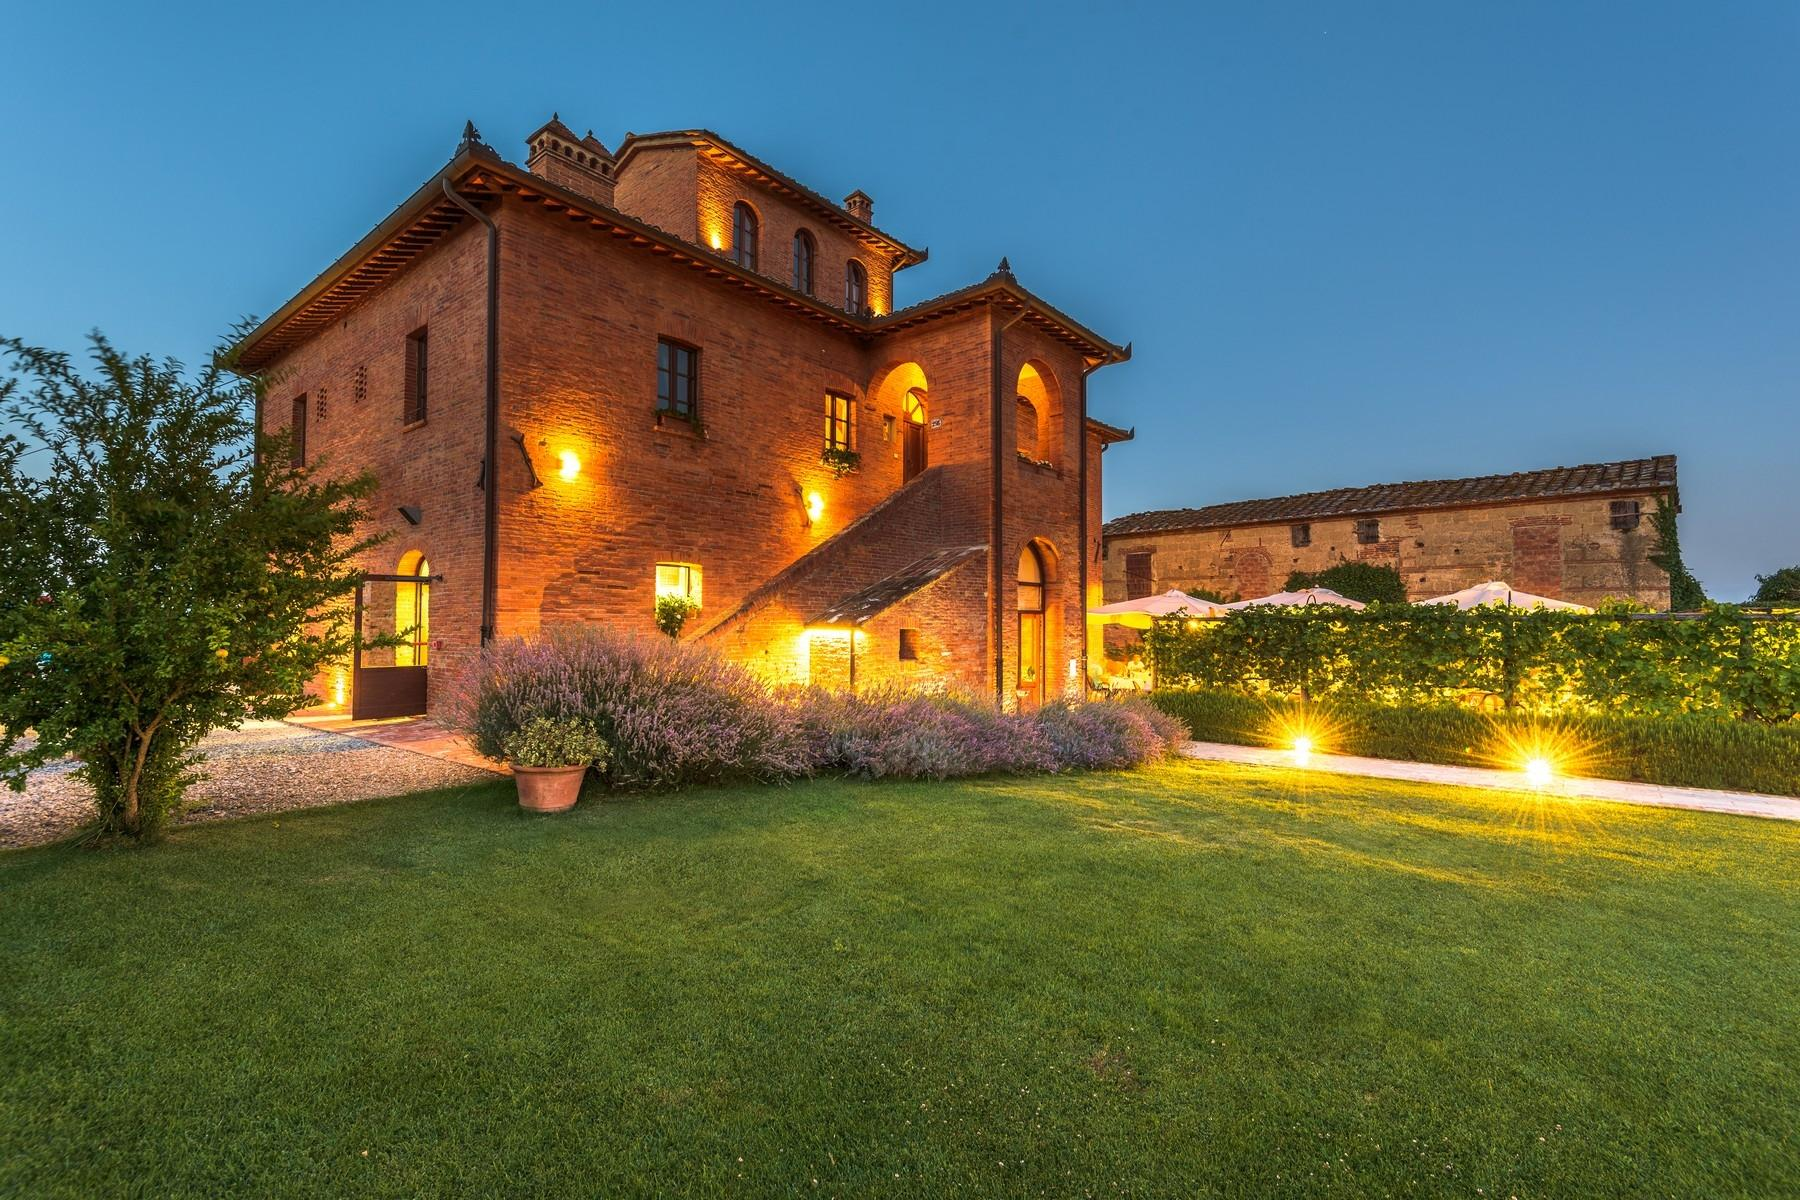 Country hotel with adjacent private villa near Siena - 29